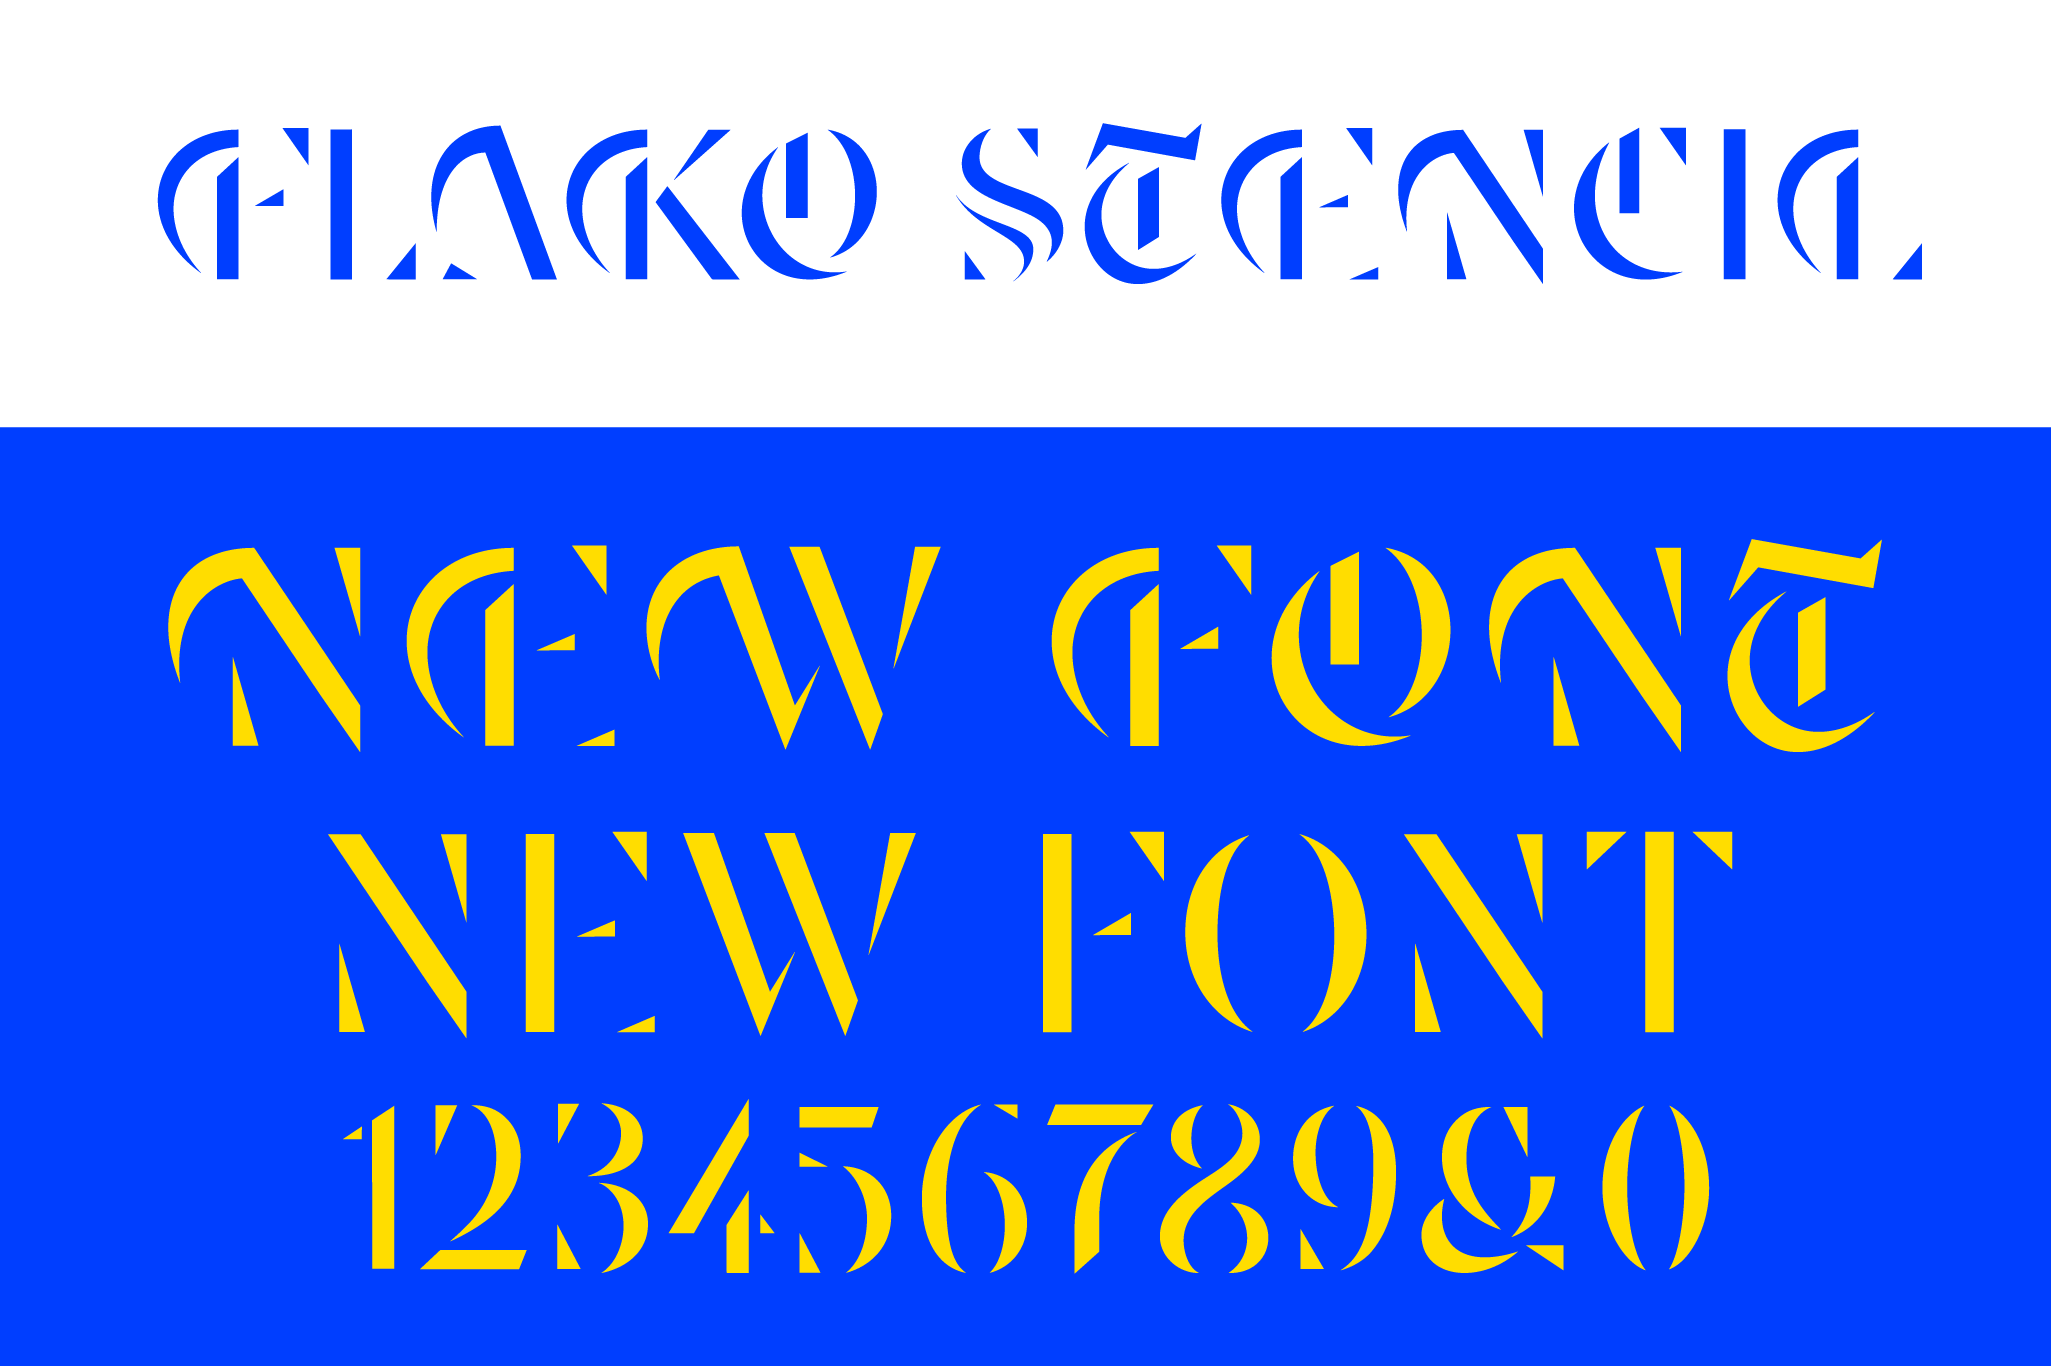 Flako stencil blackletter, a new typeface designed by Andrei Robu. Available on www.typeverything.com